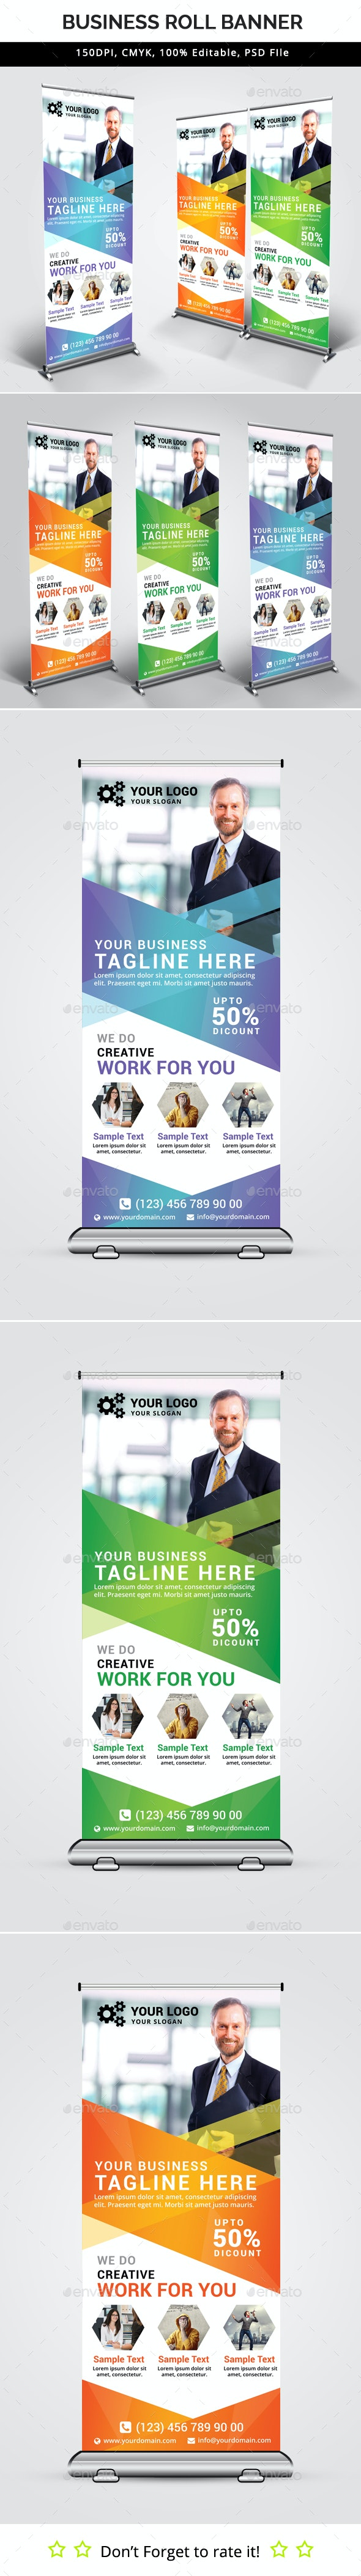 Business Roll Up Banner V30 - Signage Print Templates